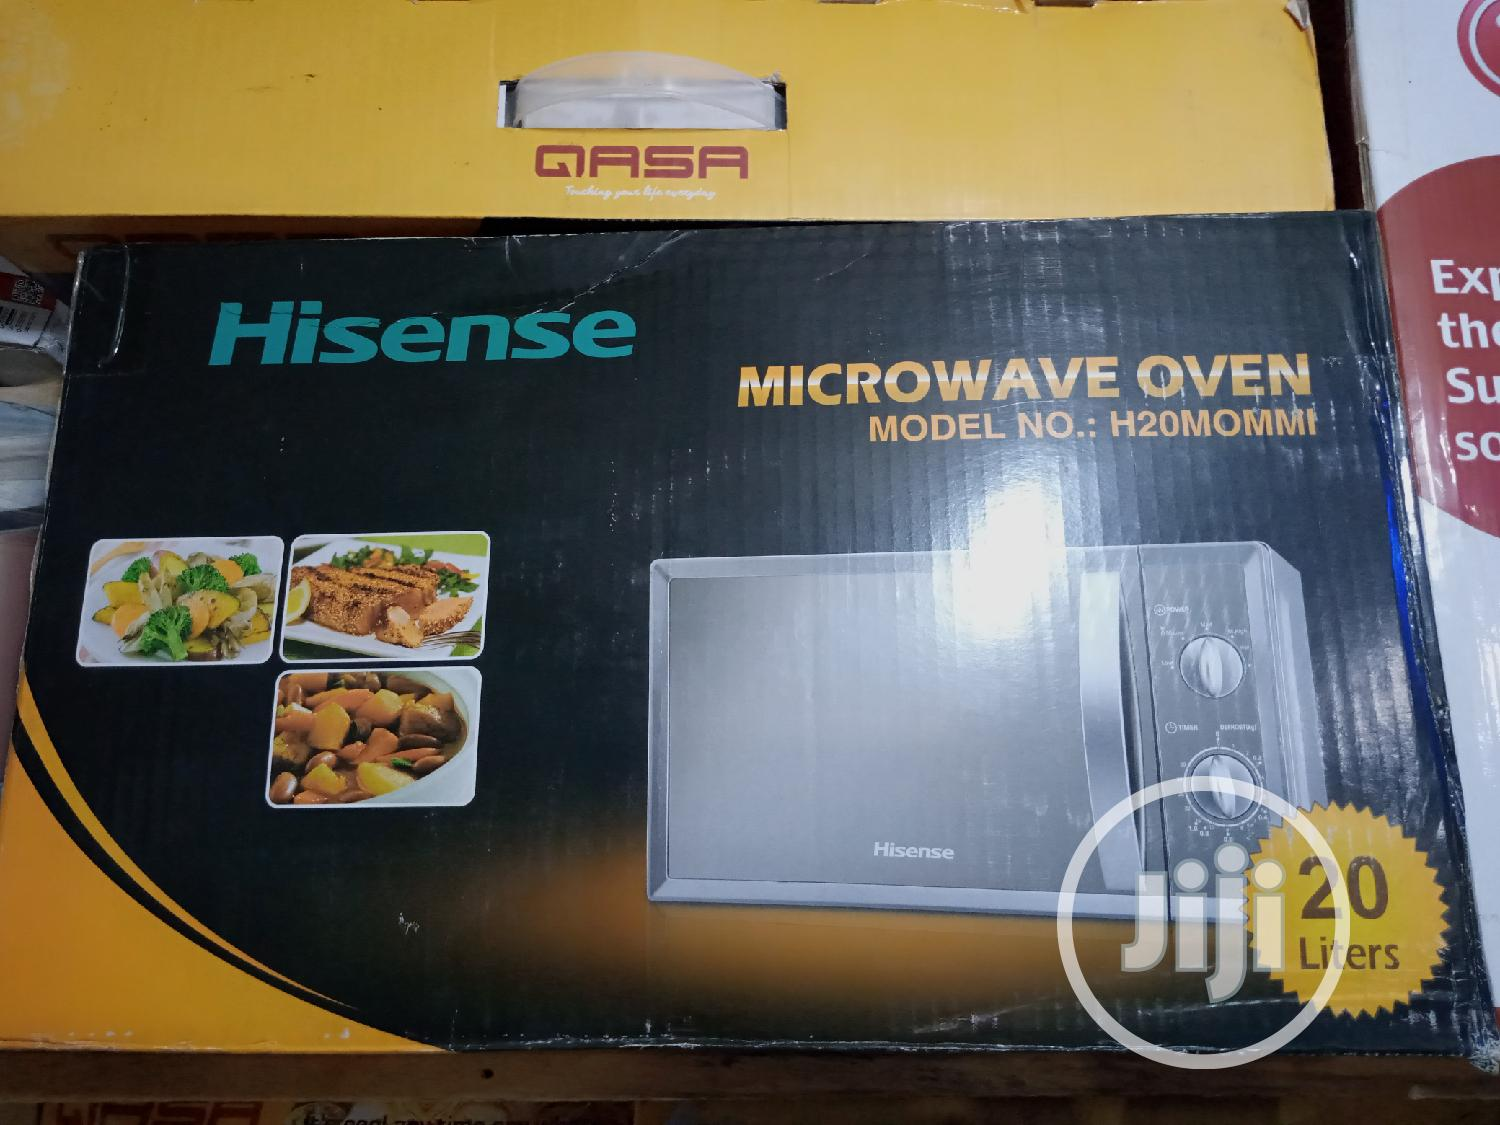 20 Liter Microwave Oven | Kitchen Appliances for sale in Wuse, Abuja (FCT) State, Nigeria